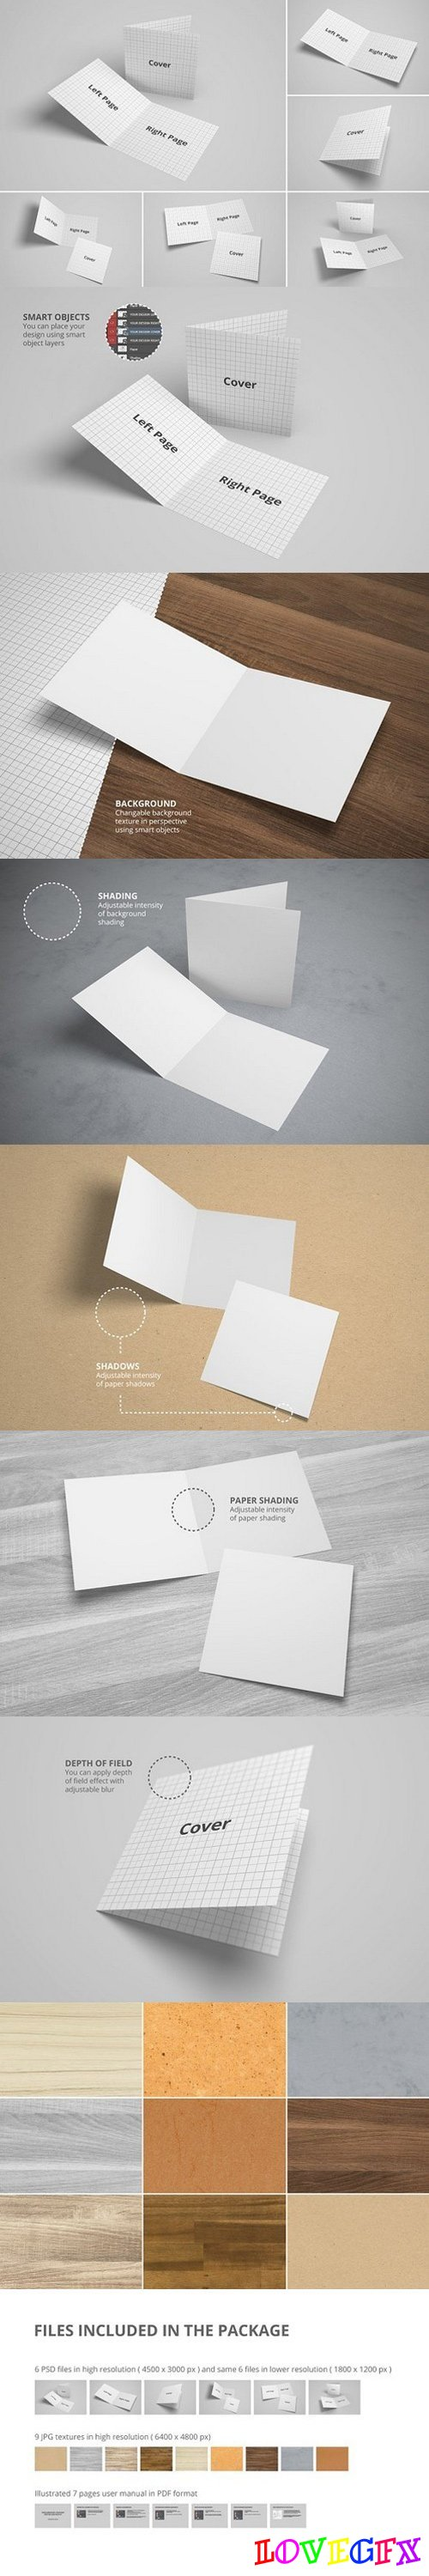 Bifold Brochure/Greeting Card Mockup 1493517